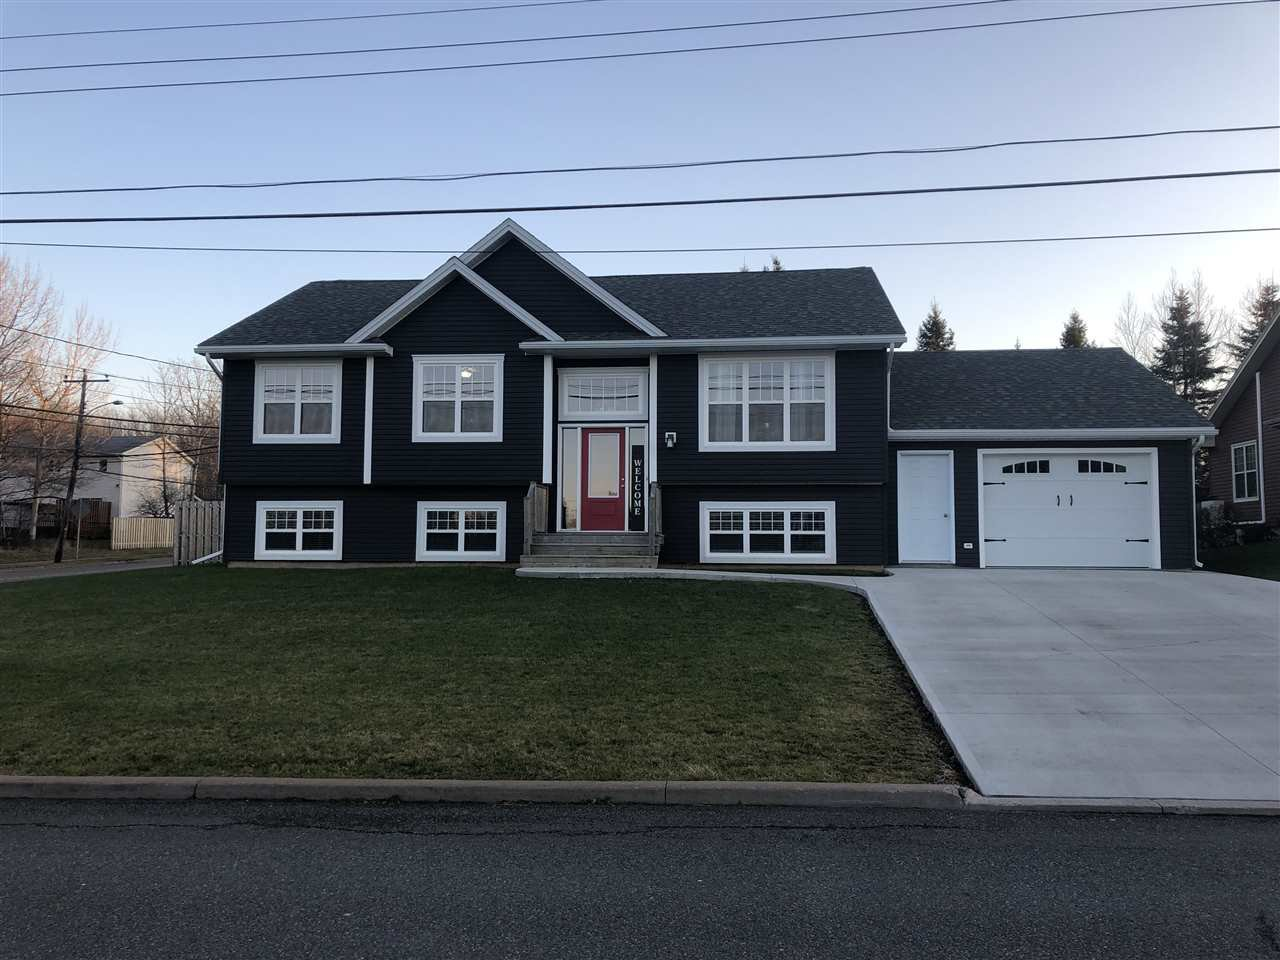 Main Photo: 2 Parkview Drive in New Glasgow: 106-New Glasgow, Stellarton Residential for sale (Northern Region)  : MLS®# 201927397